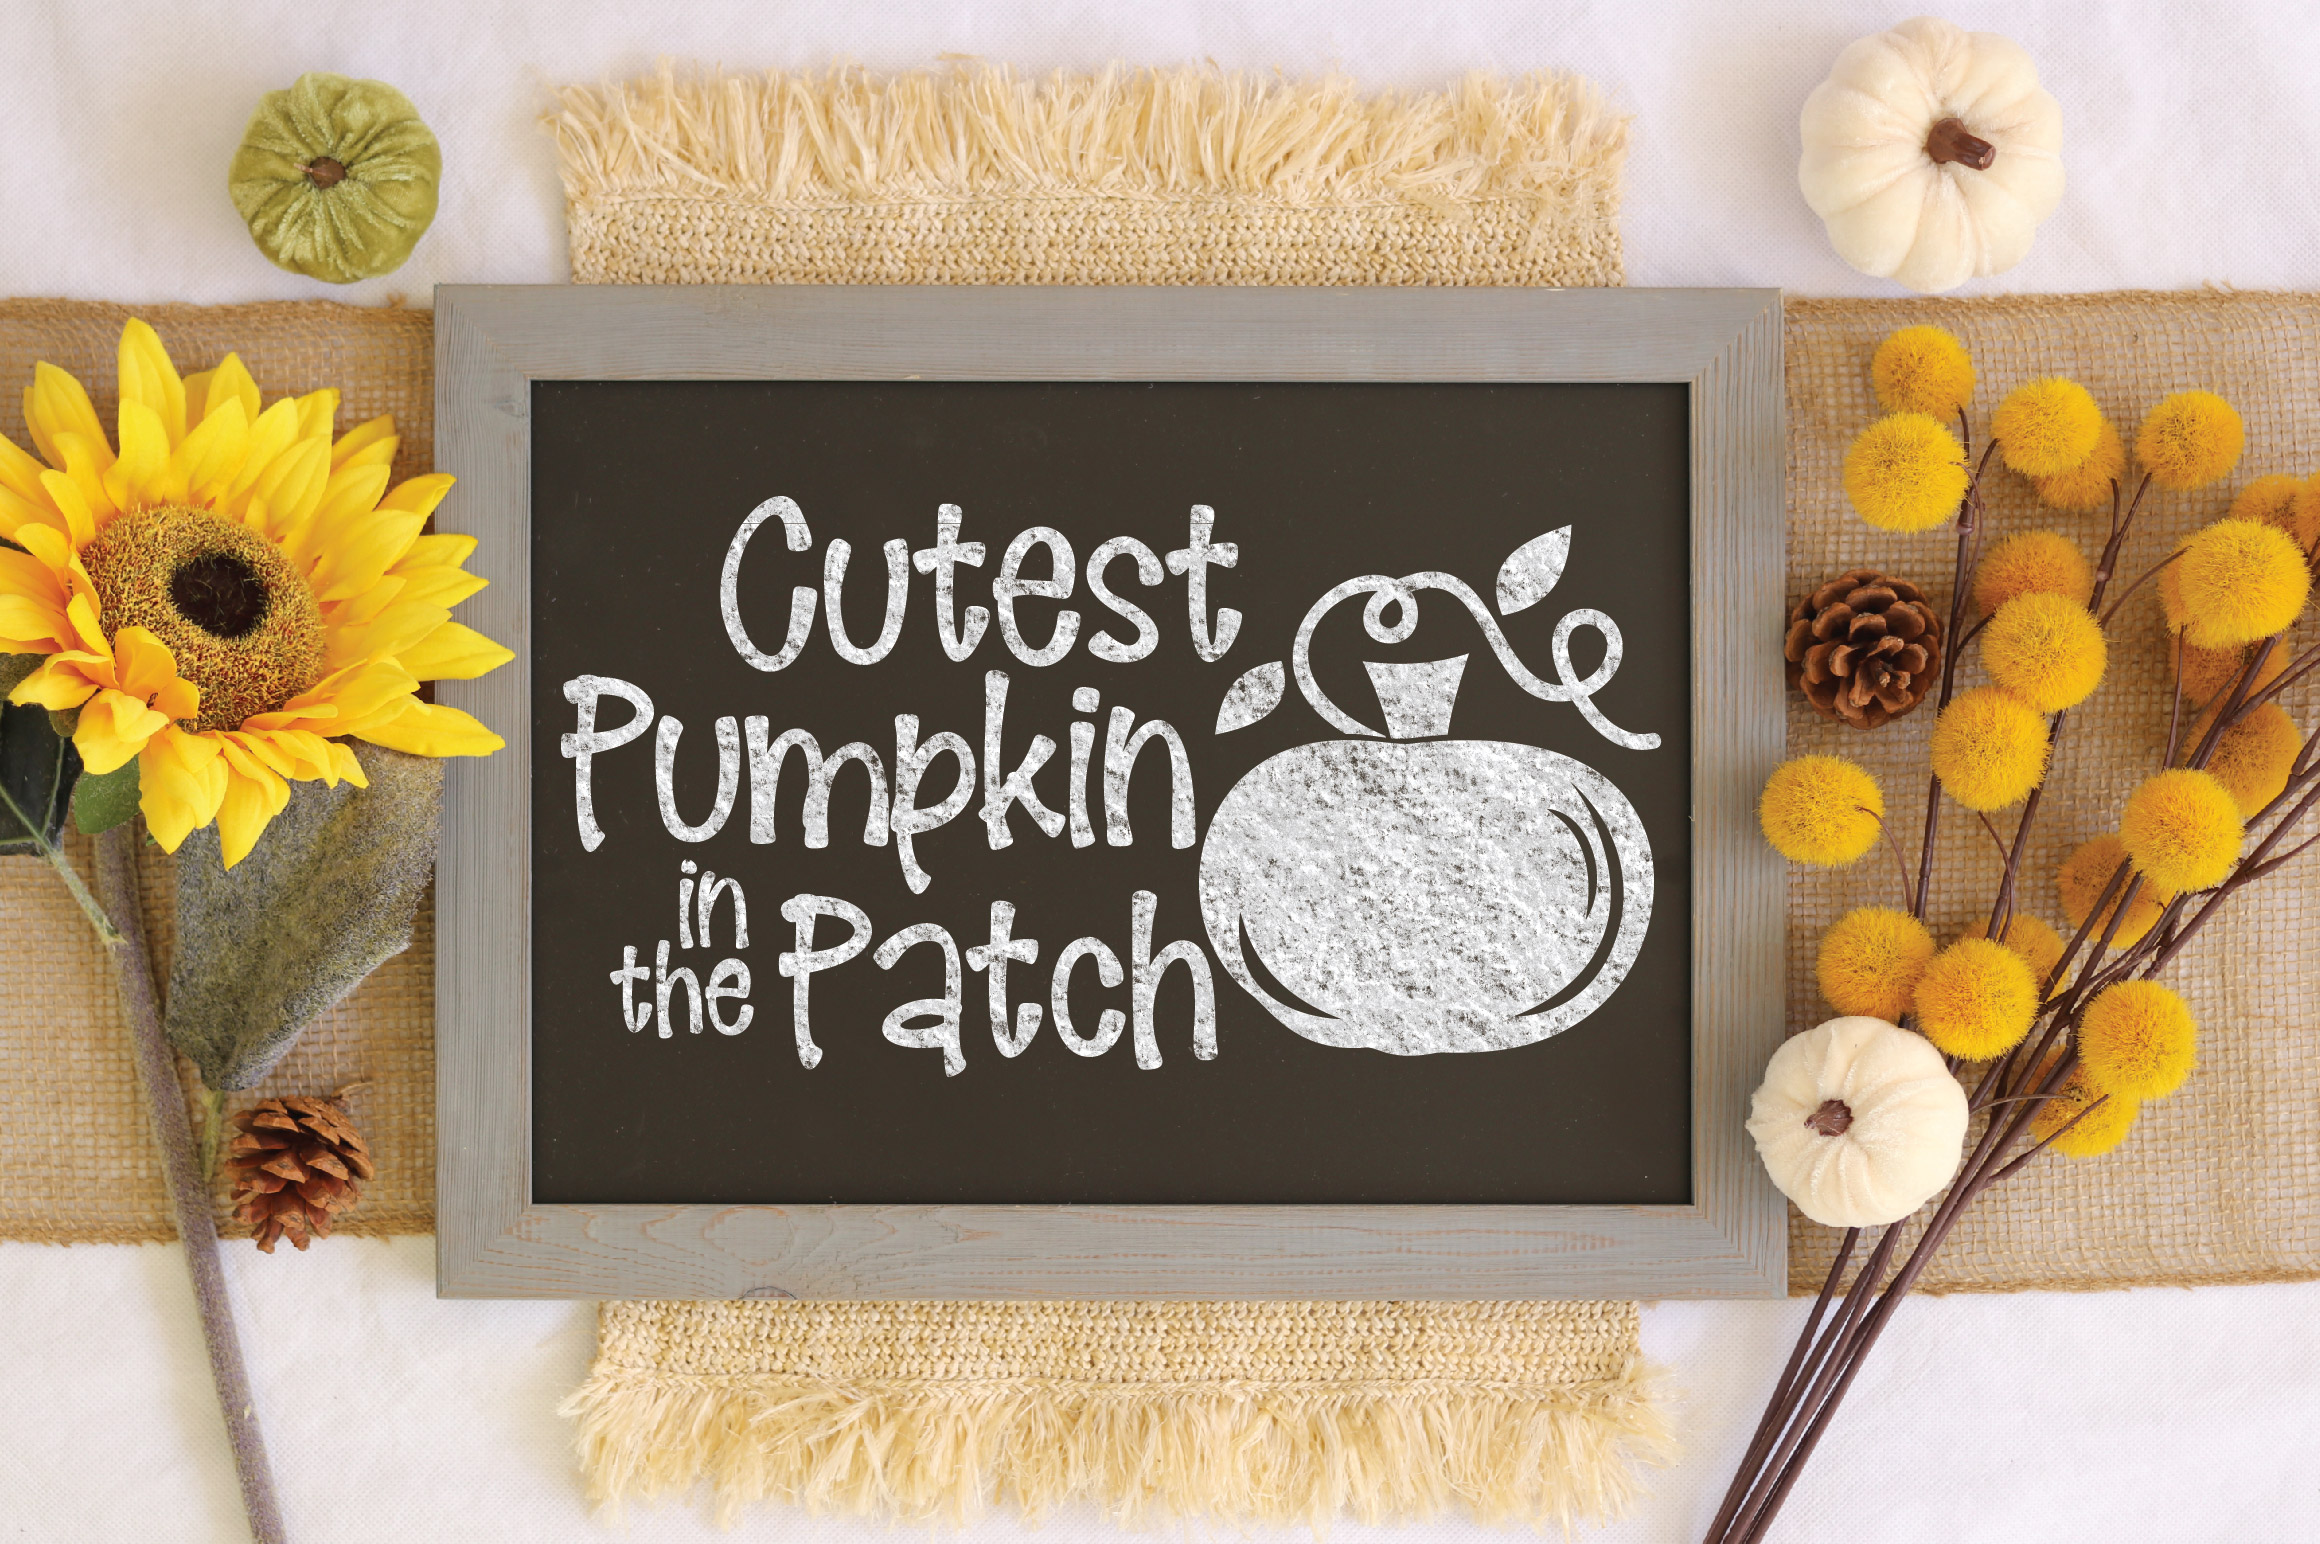 Cutest Pumpkin in the Patch SVG Cut File - Fall Pumpkin SVG example image 3